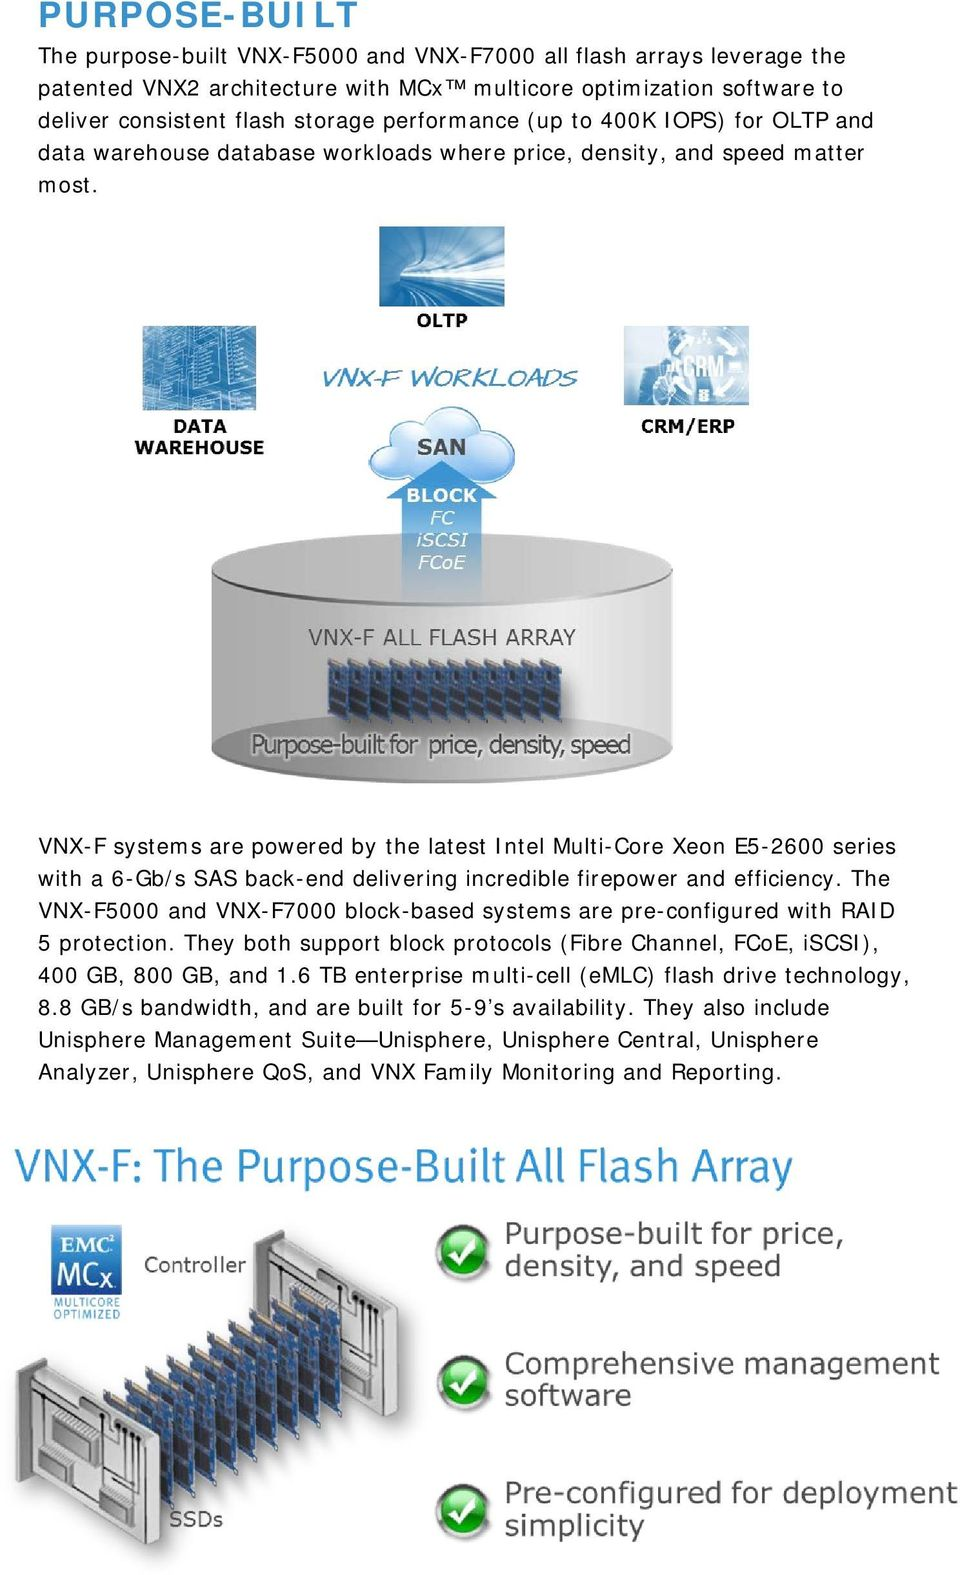 VNX-F systems are powered by the latest Intel Multi-Core Xeon E5-2600 series with a 6-Gb/s SAS back-end delivering incredible firepower and efficiency.